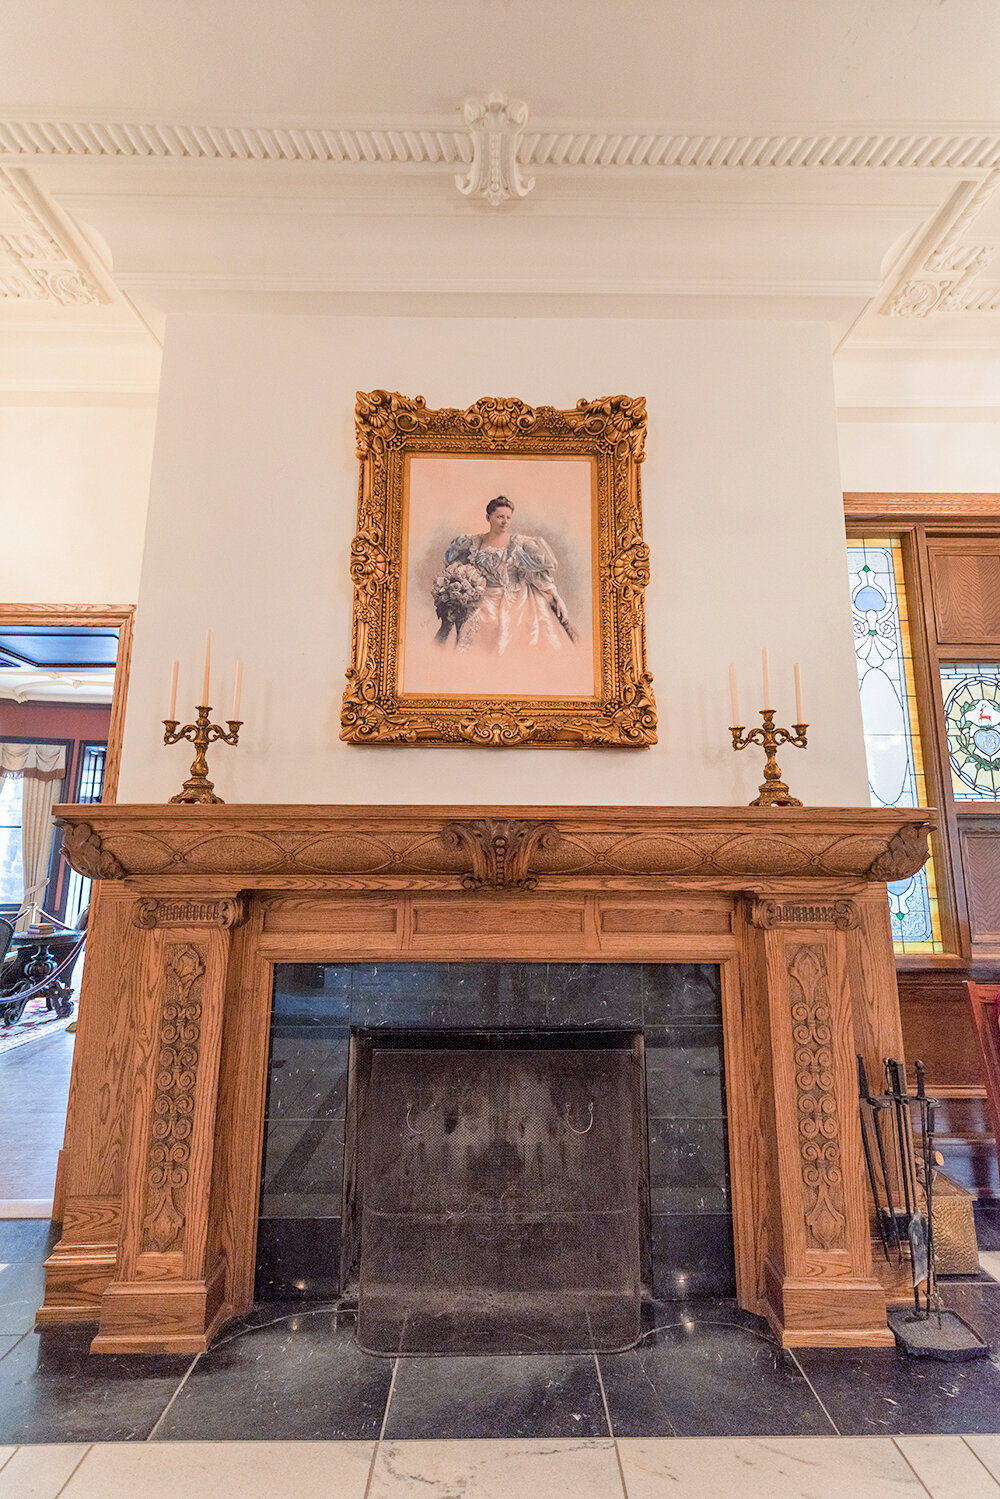 A portrait of Louise Boldt hangs over the fireplace.